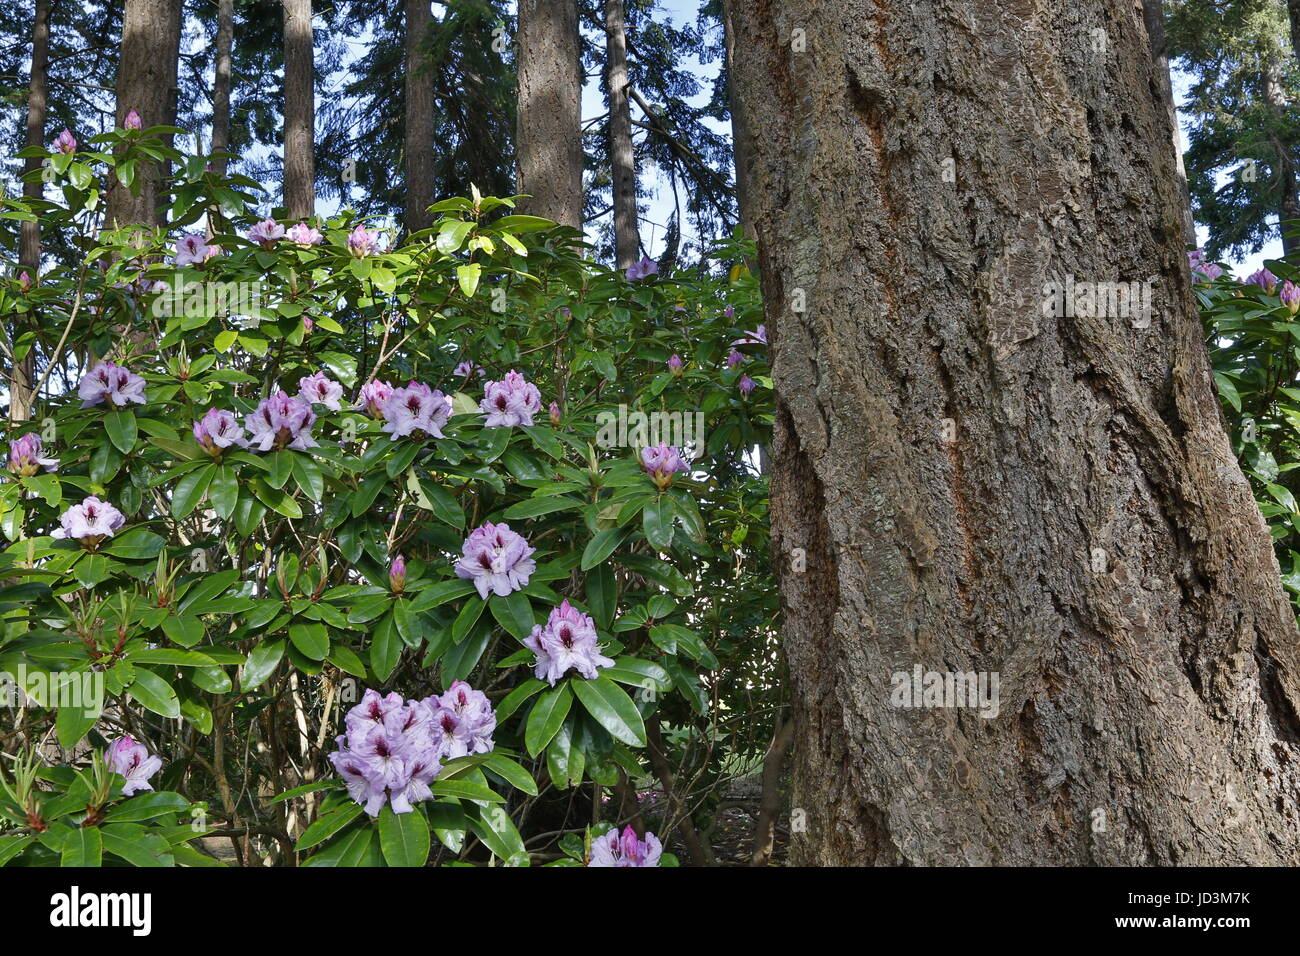 Rhododendron, rhododendrons in the forest of Pacific Northwest with fir tree. - Stock Image